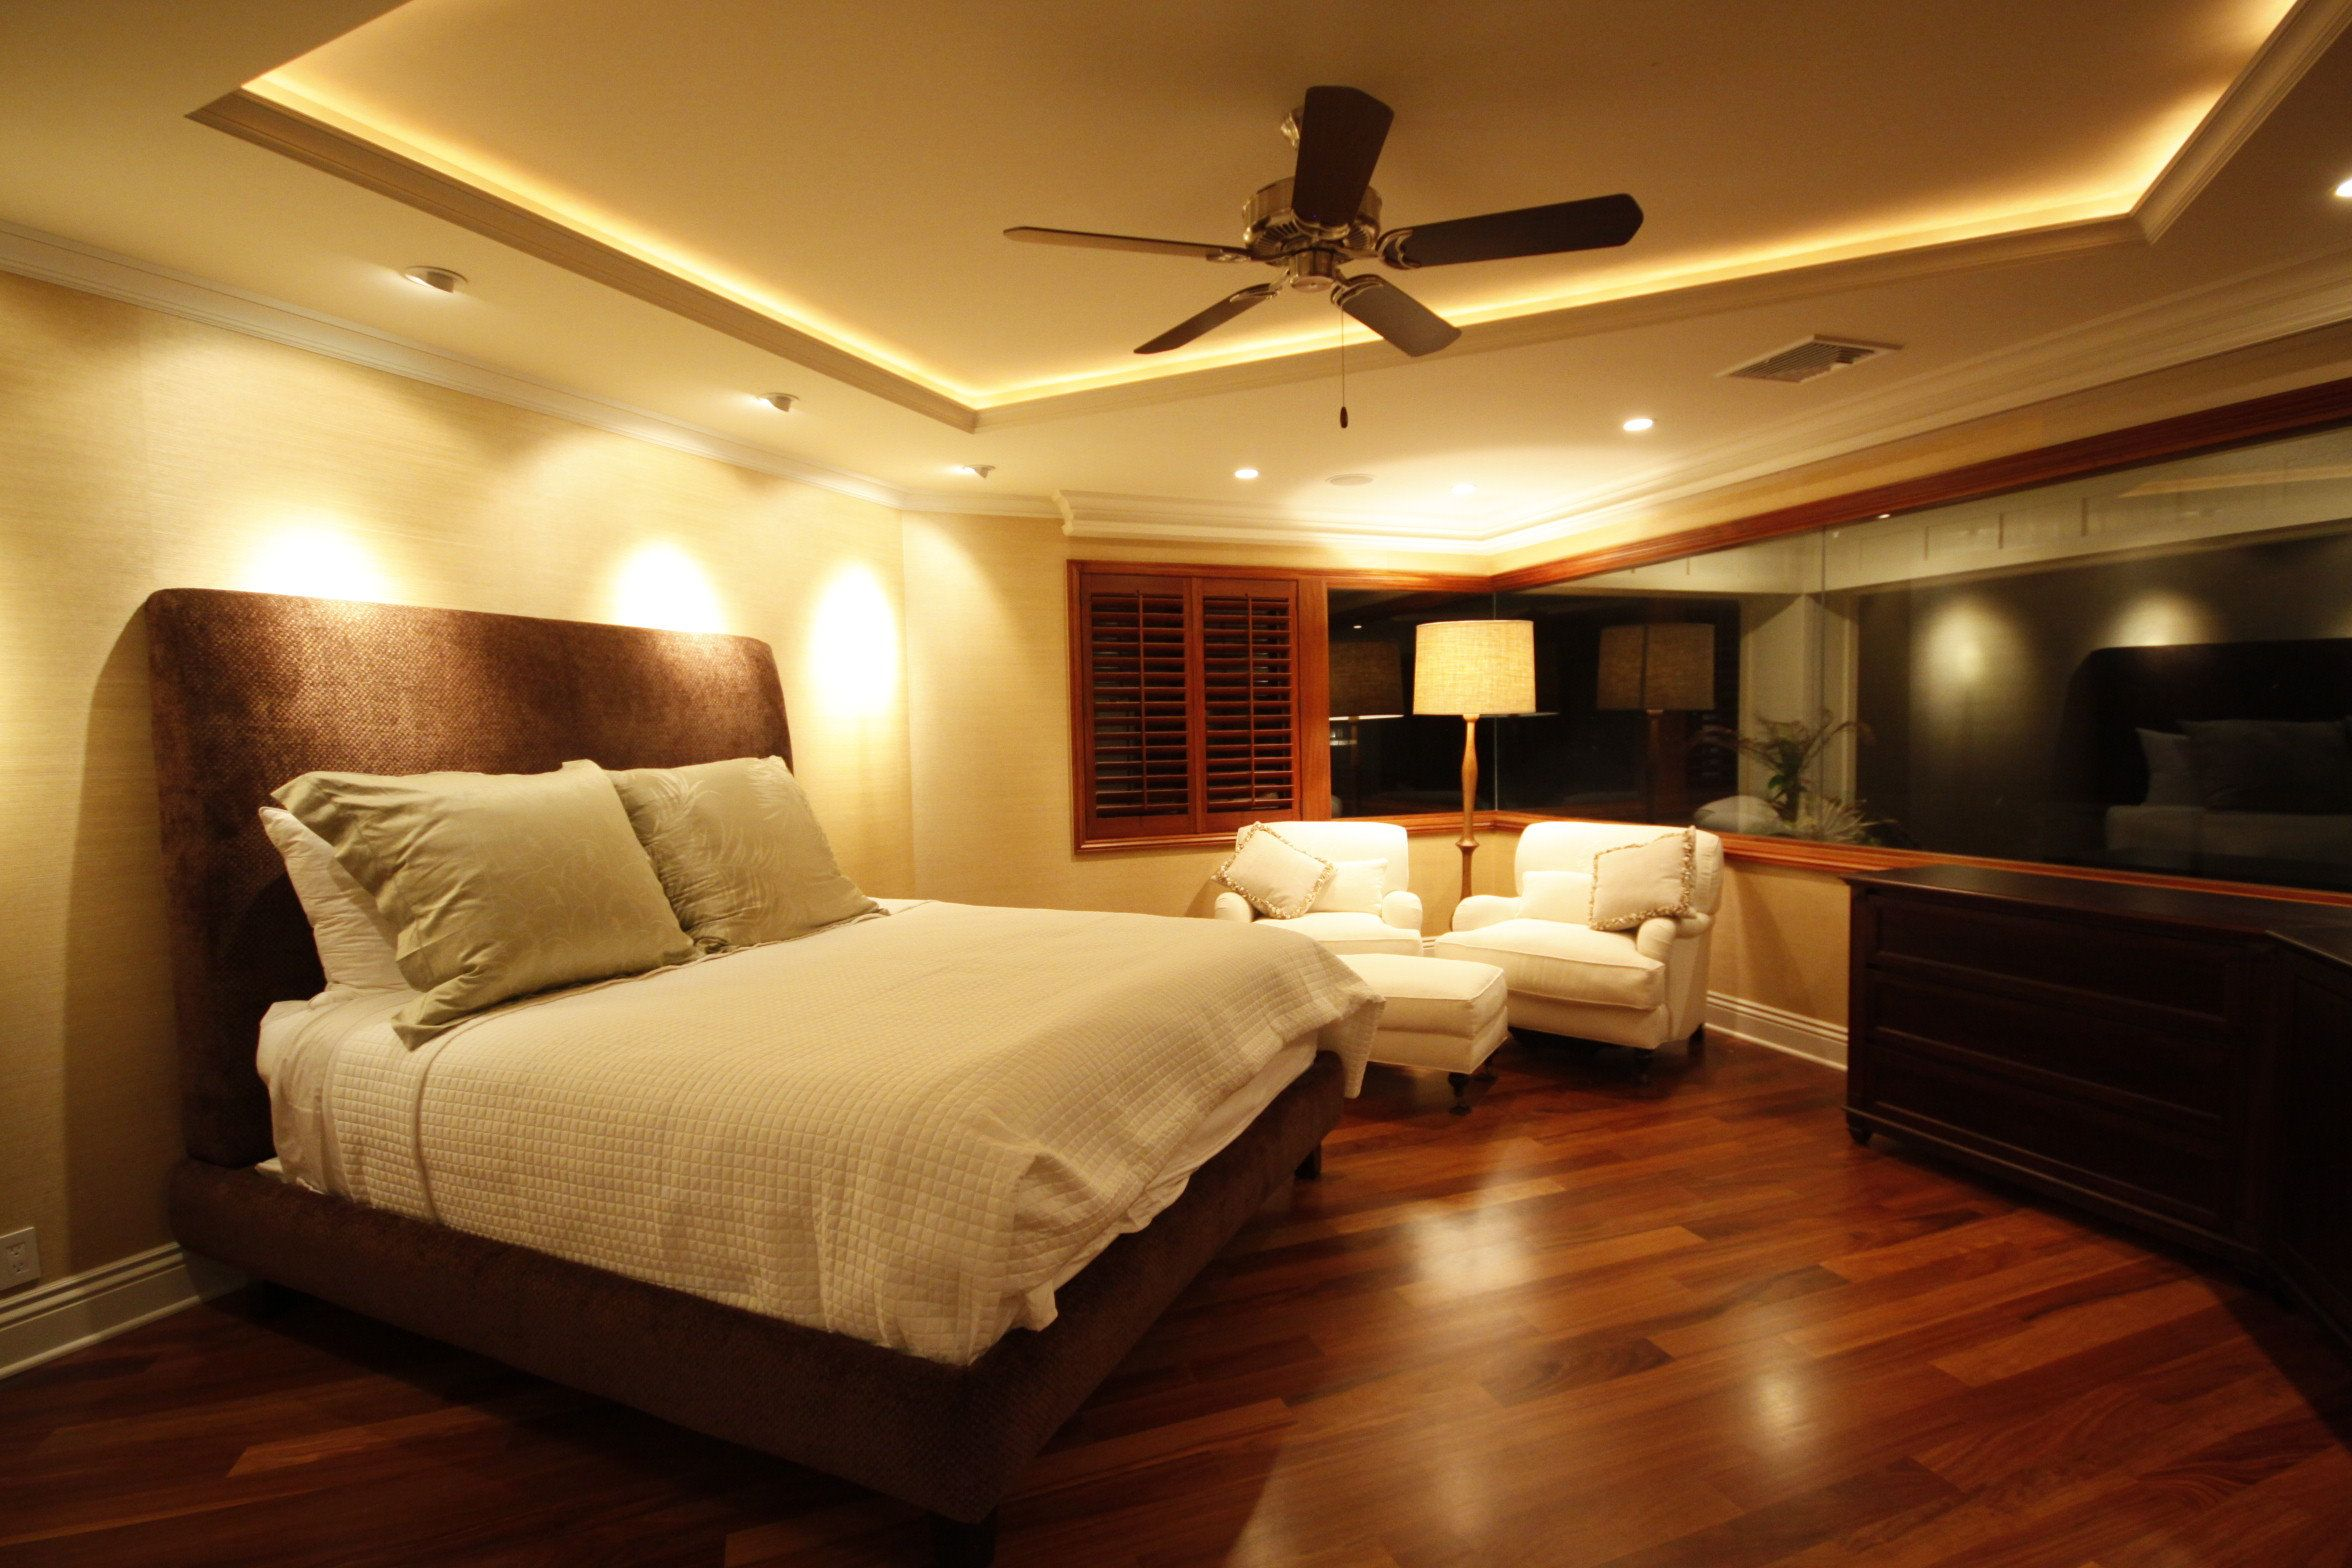 Appealing master bedroom modern decor with wooden floors for Master bedroom designs